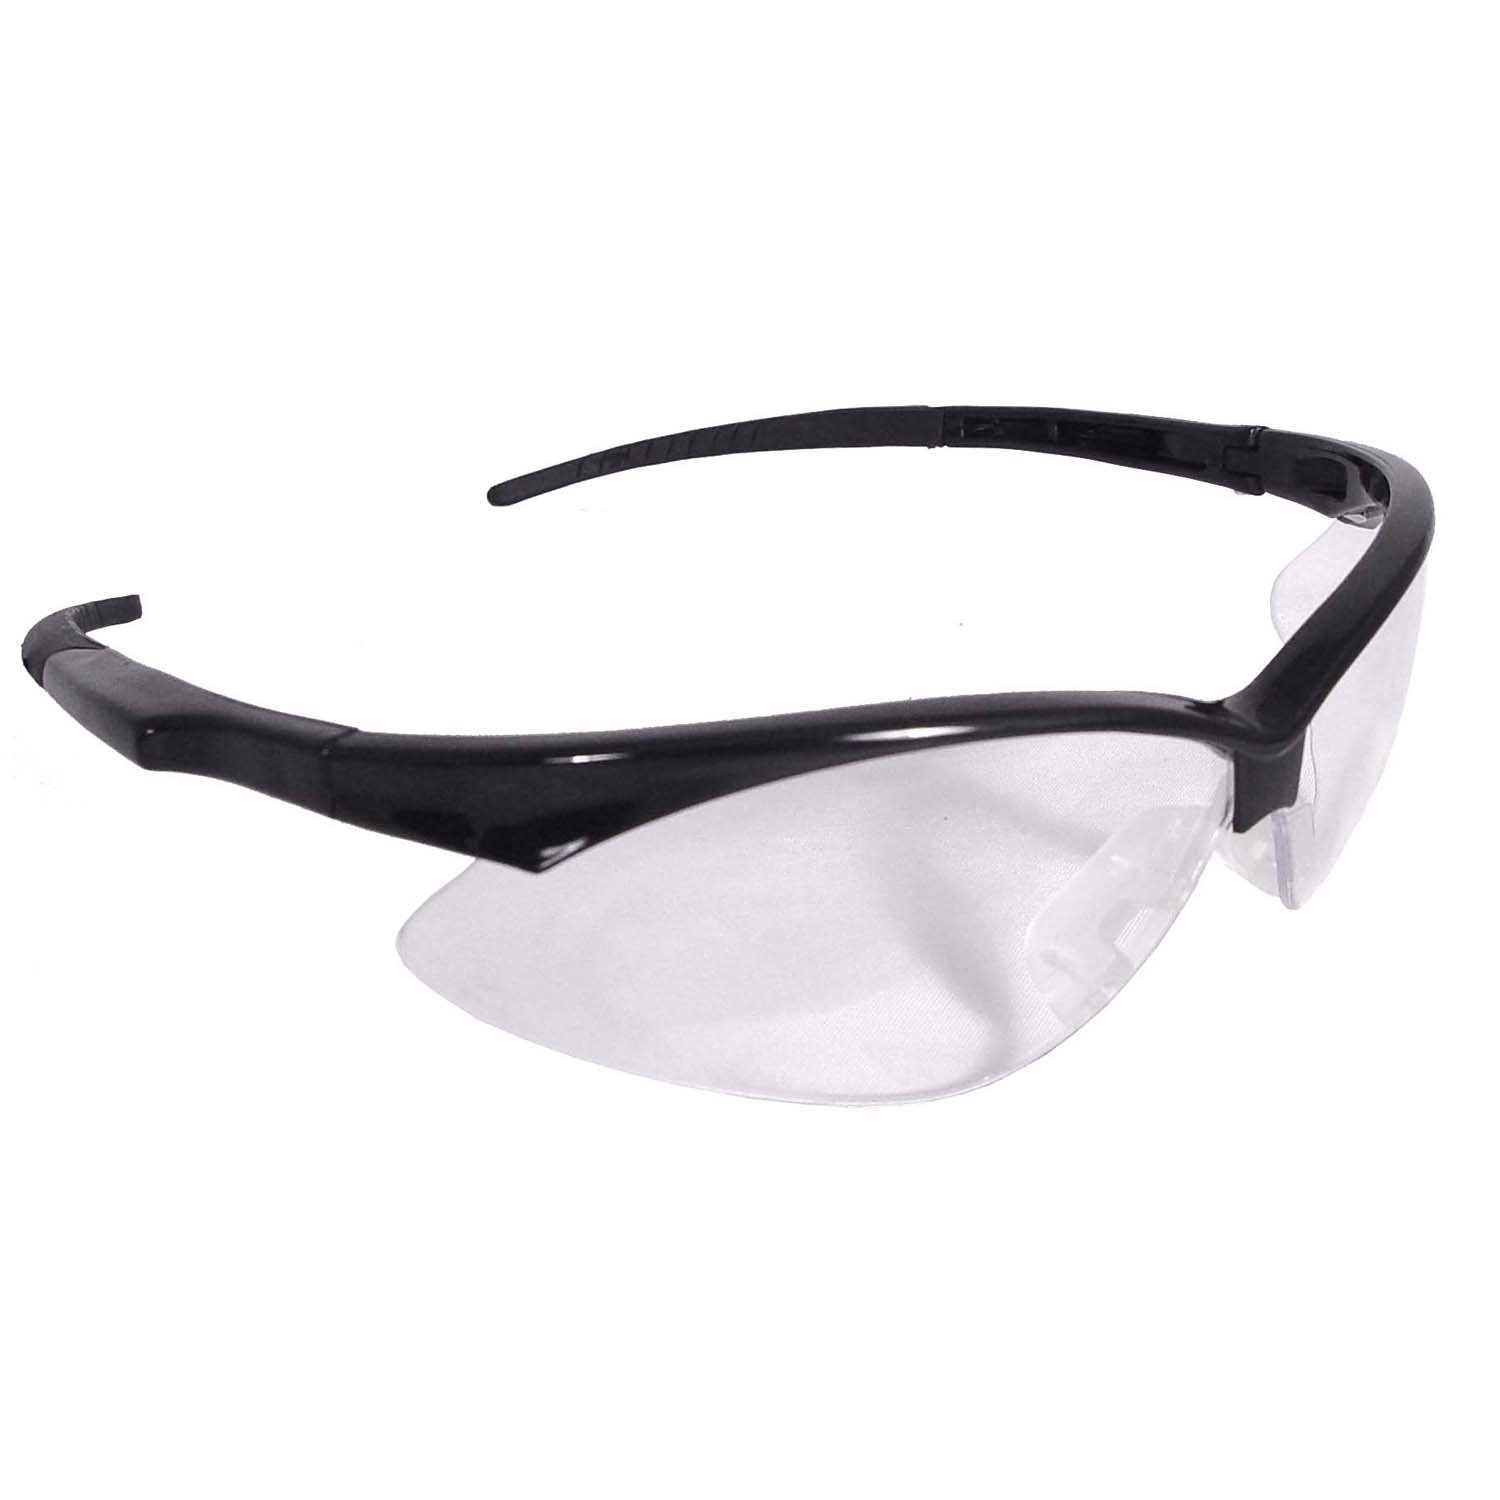 c8a0d514321 Radians Outback Junior Protective Eyewear with Clear Lens